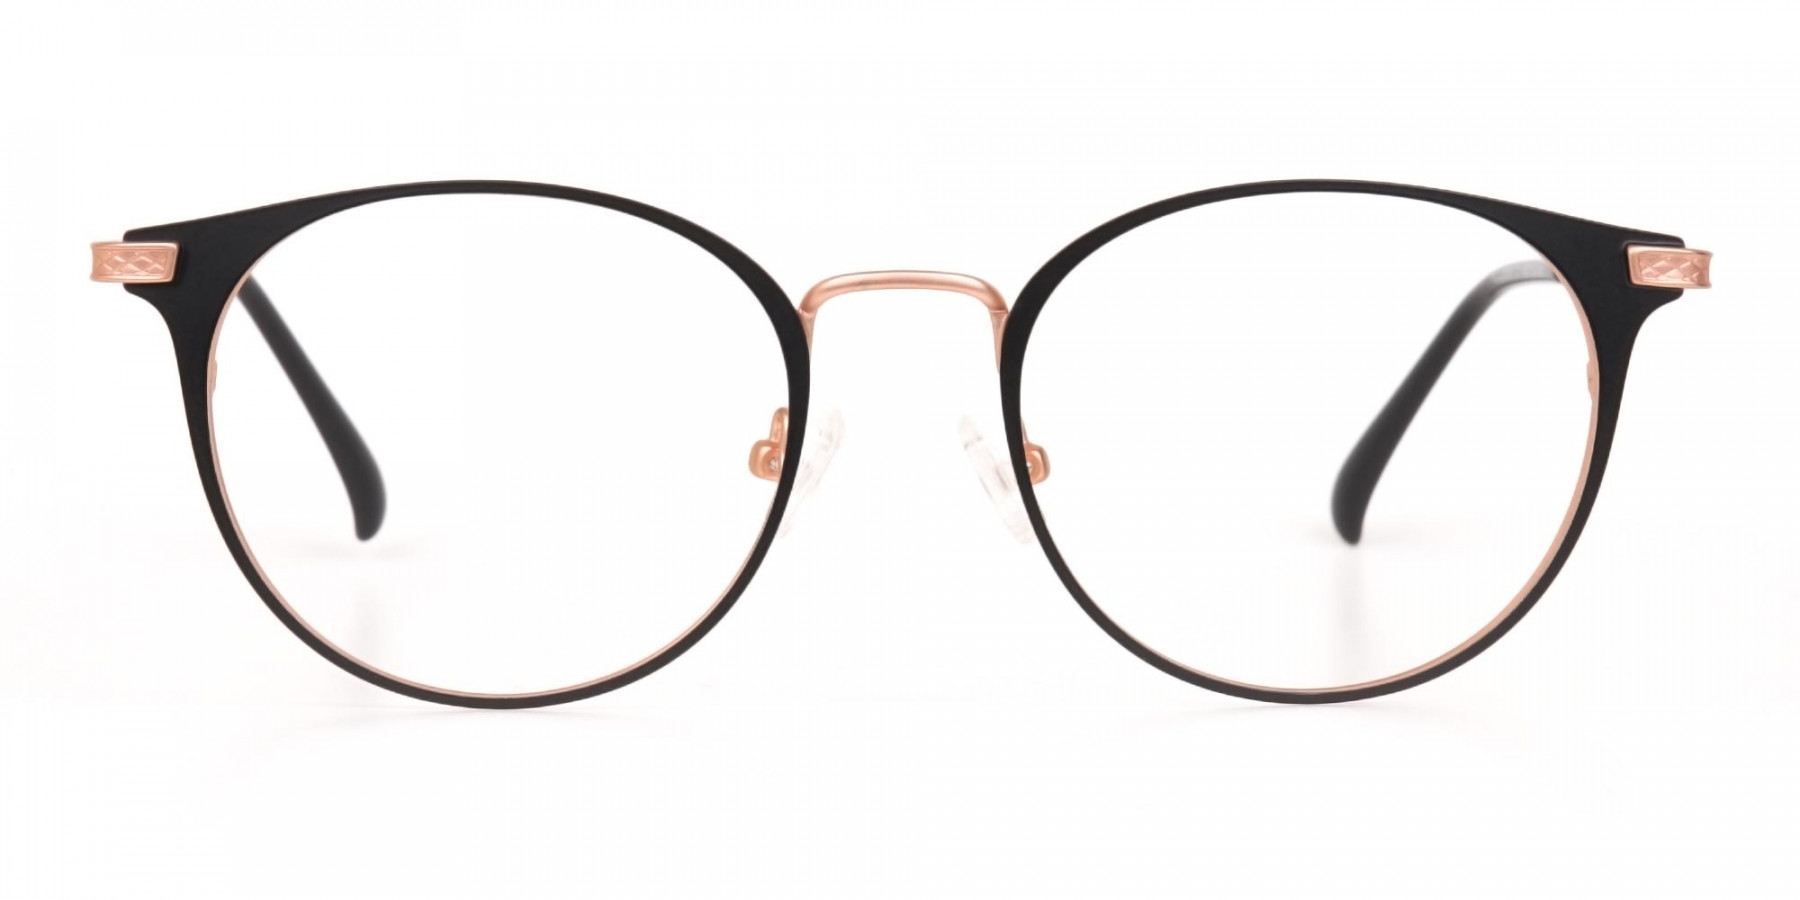 Matte Black & Rose Gold Round Glasses Women-1